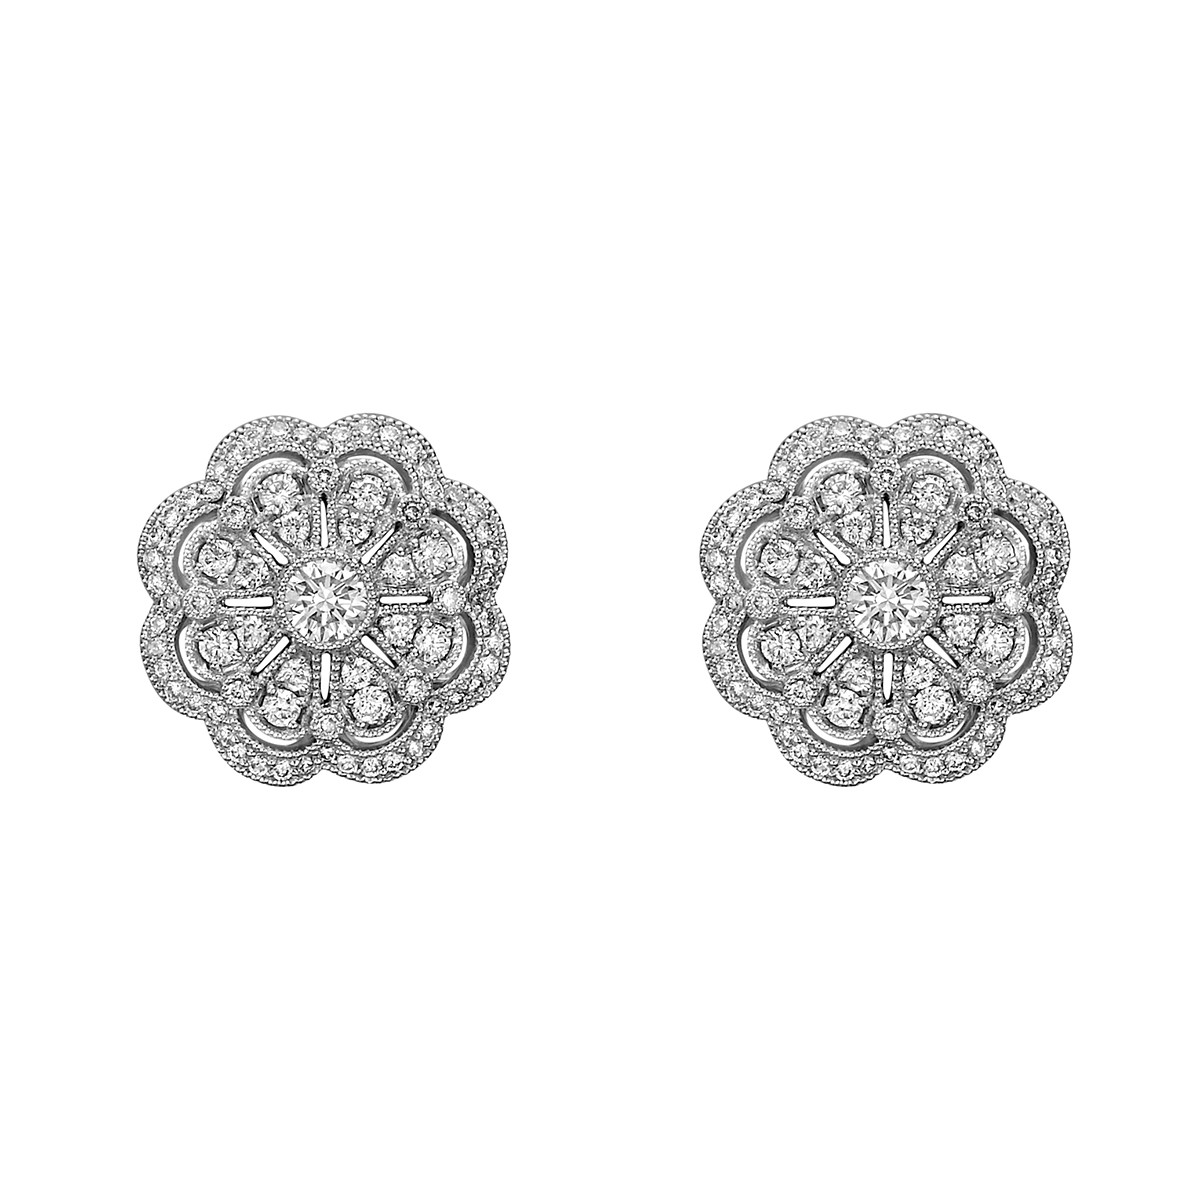 18k White Gold & Diamond Cluster Flower Stud Earrings